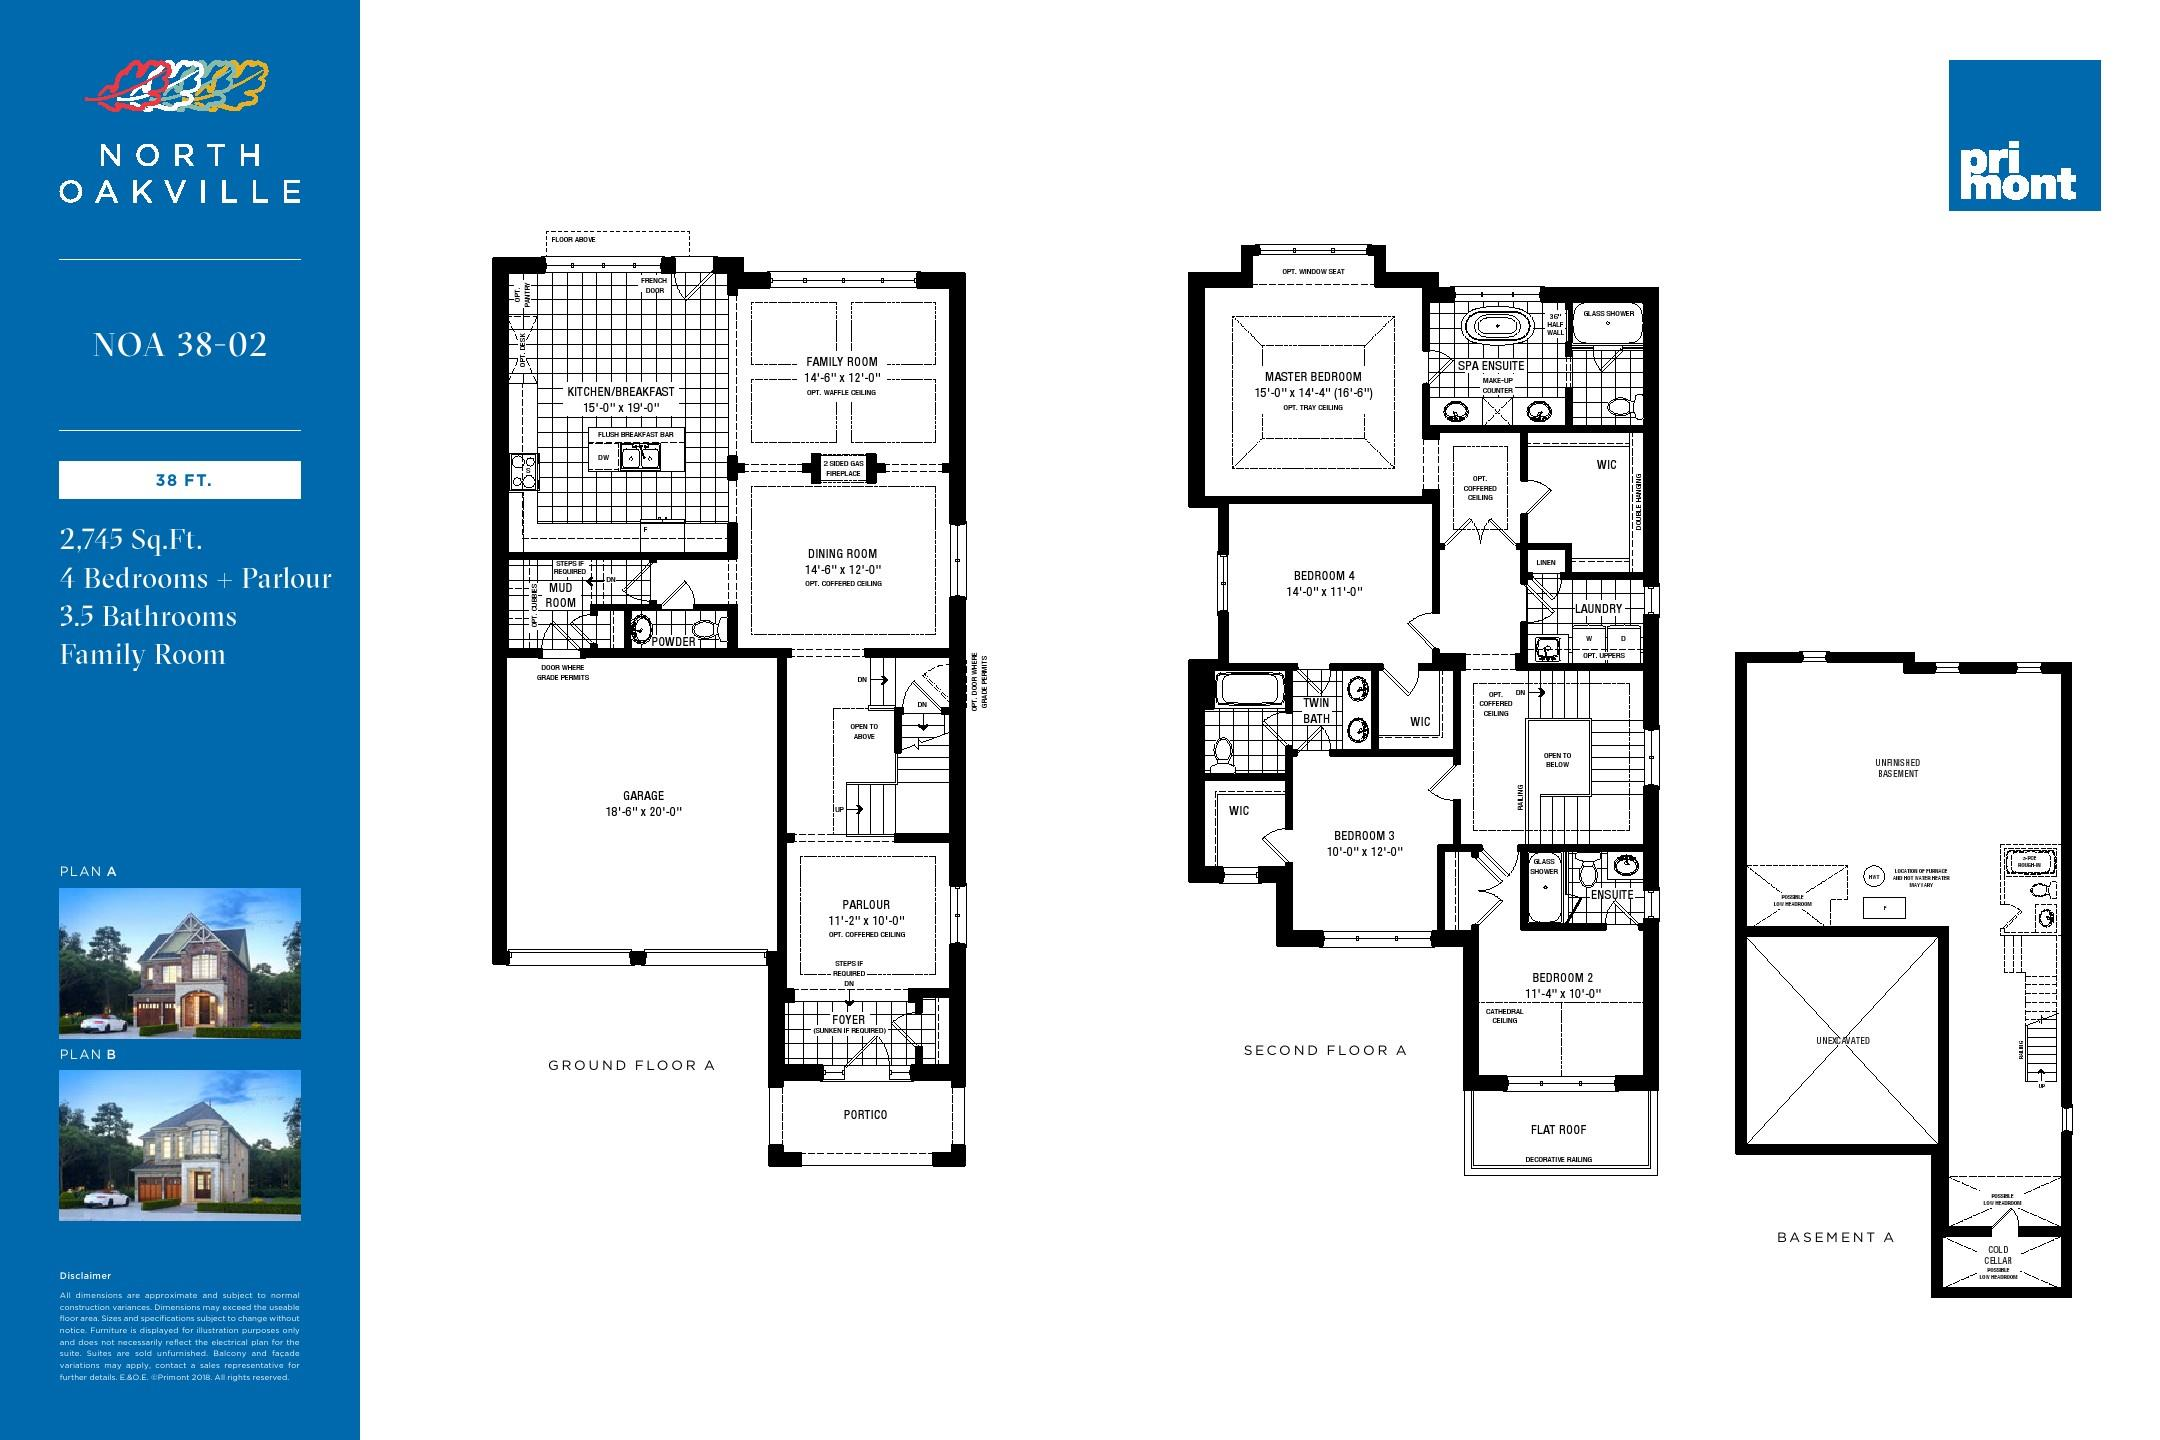 North Oakville Homes Maziar Moini Broker Home Leader Realty Inc Specification Of Electrical Plan Floor Plans